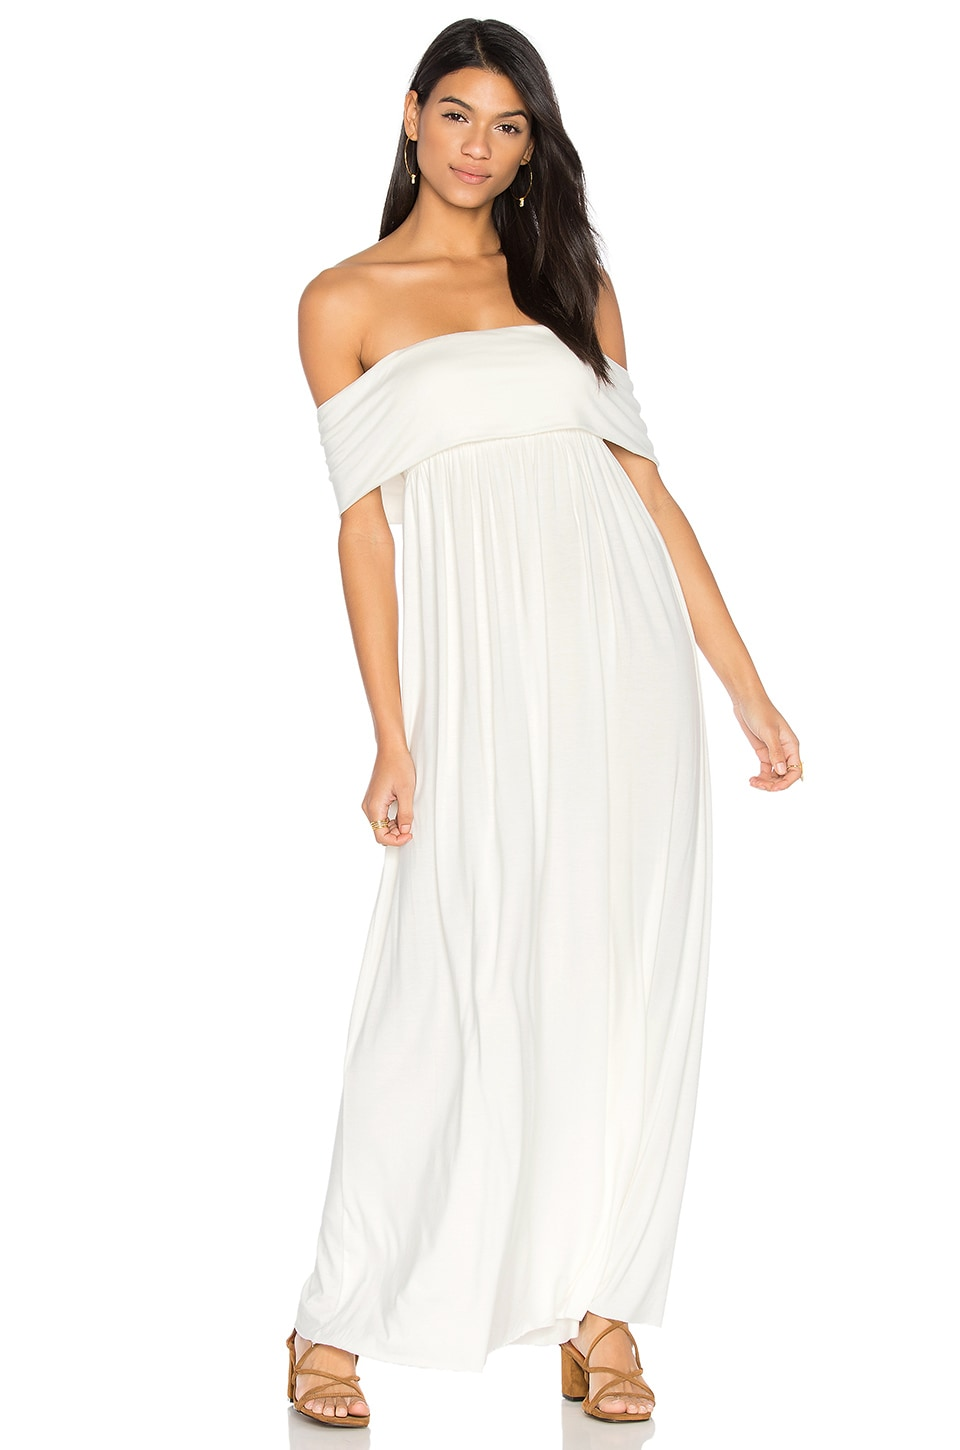 Rachel Pally Midsummer Dress in White